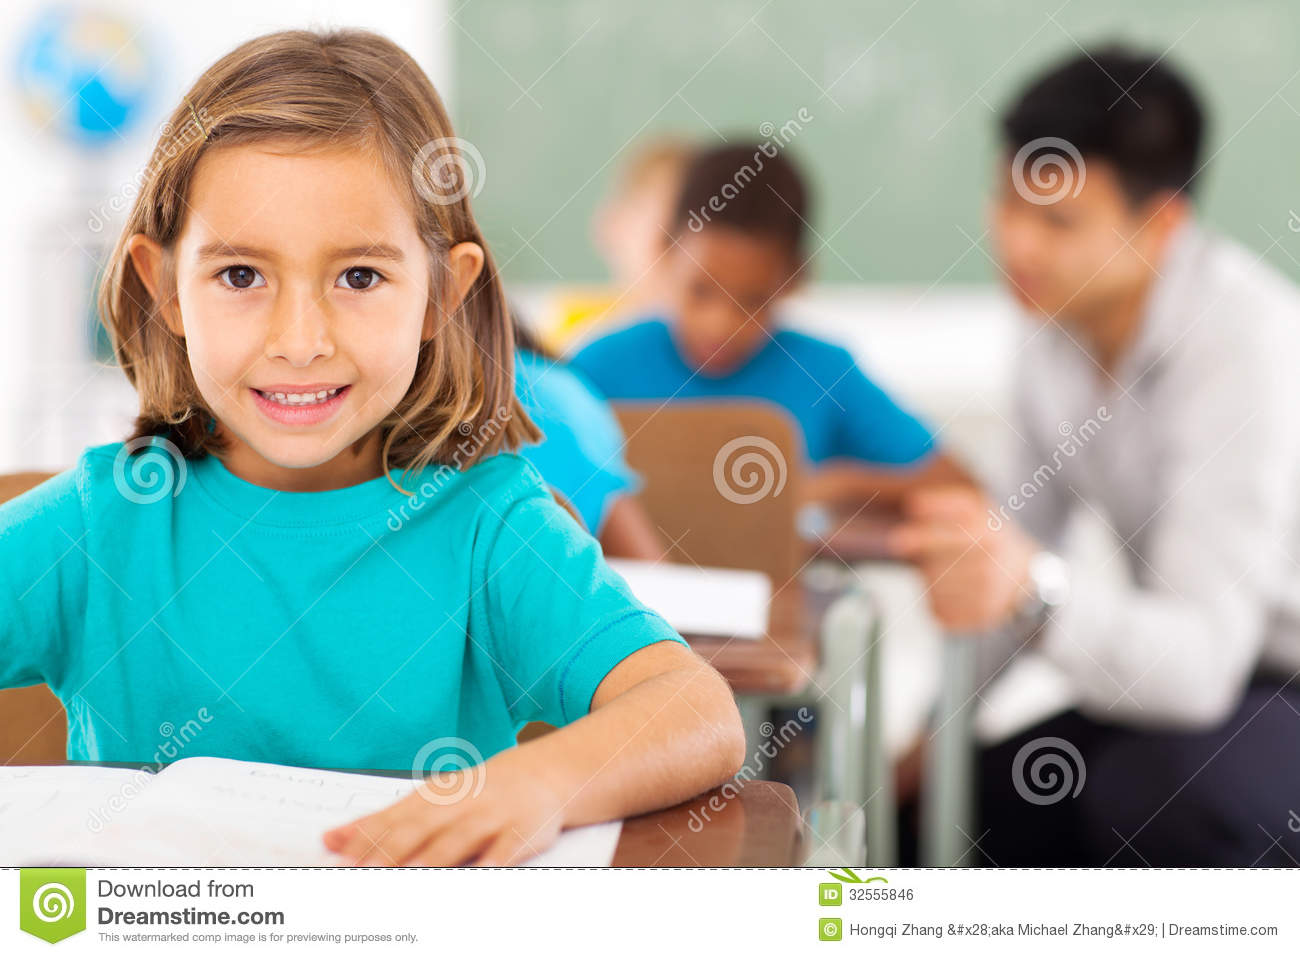 Elementary School Student Royalty Free Stock Image - Image: 32555846